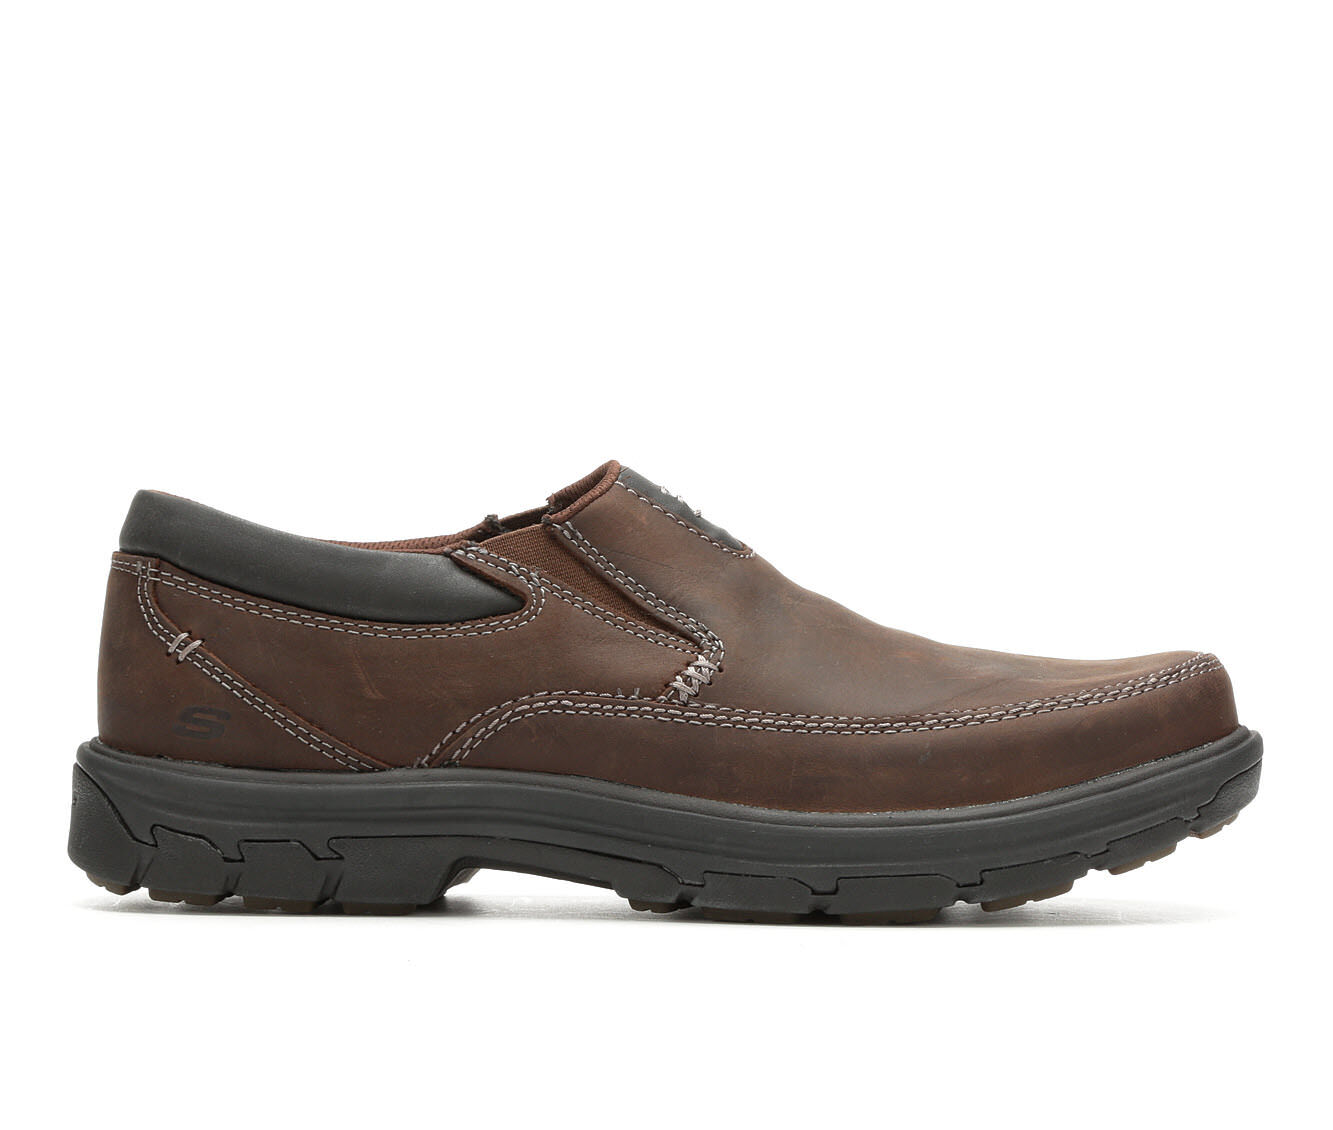 Men's Skechers Search 64261 Dark Brown